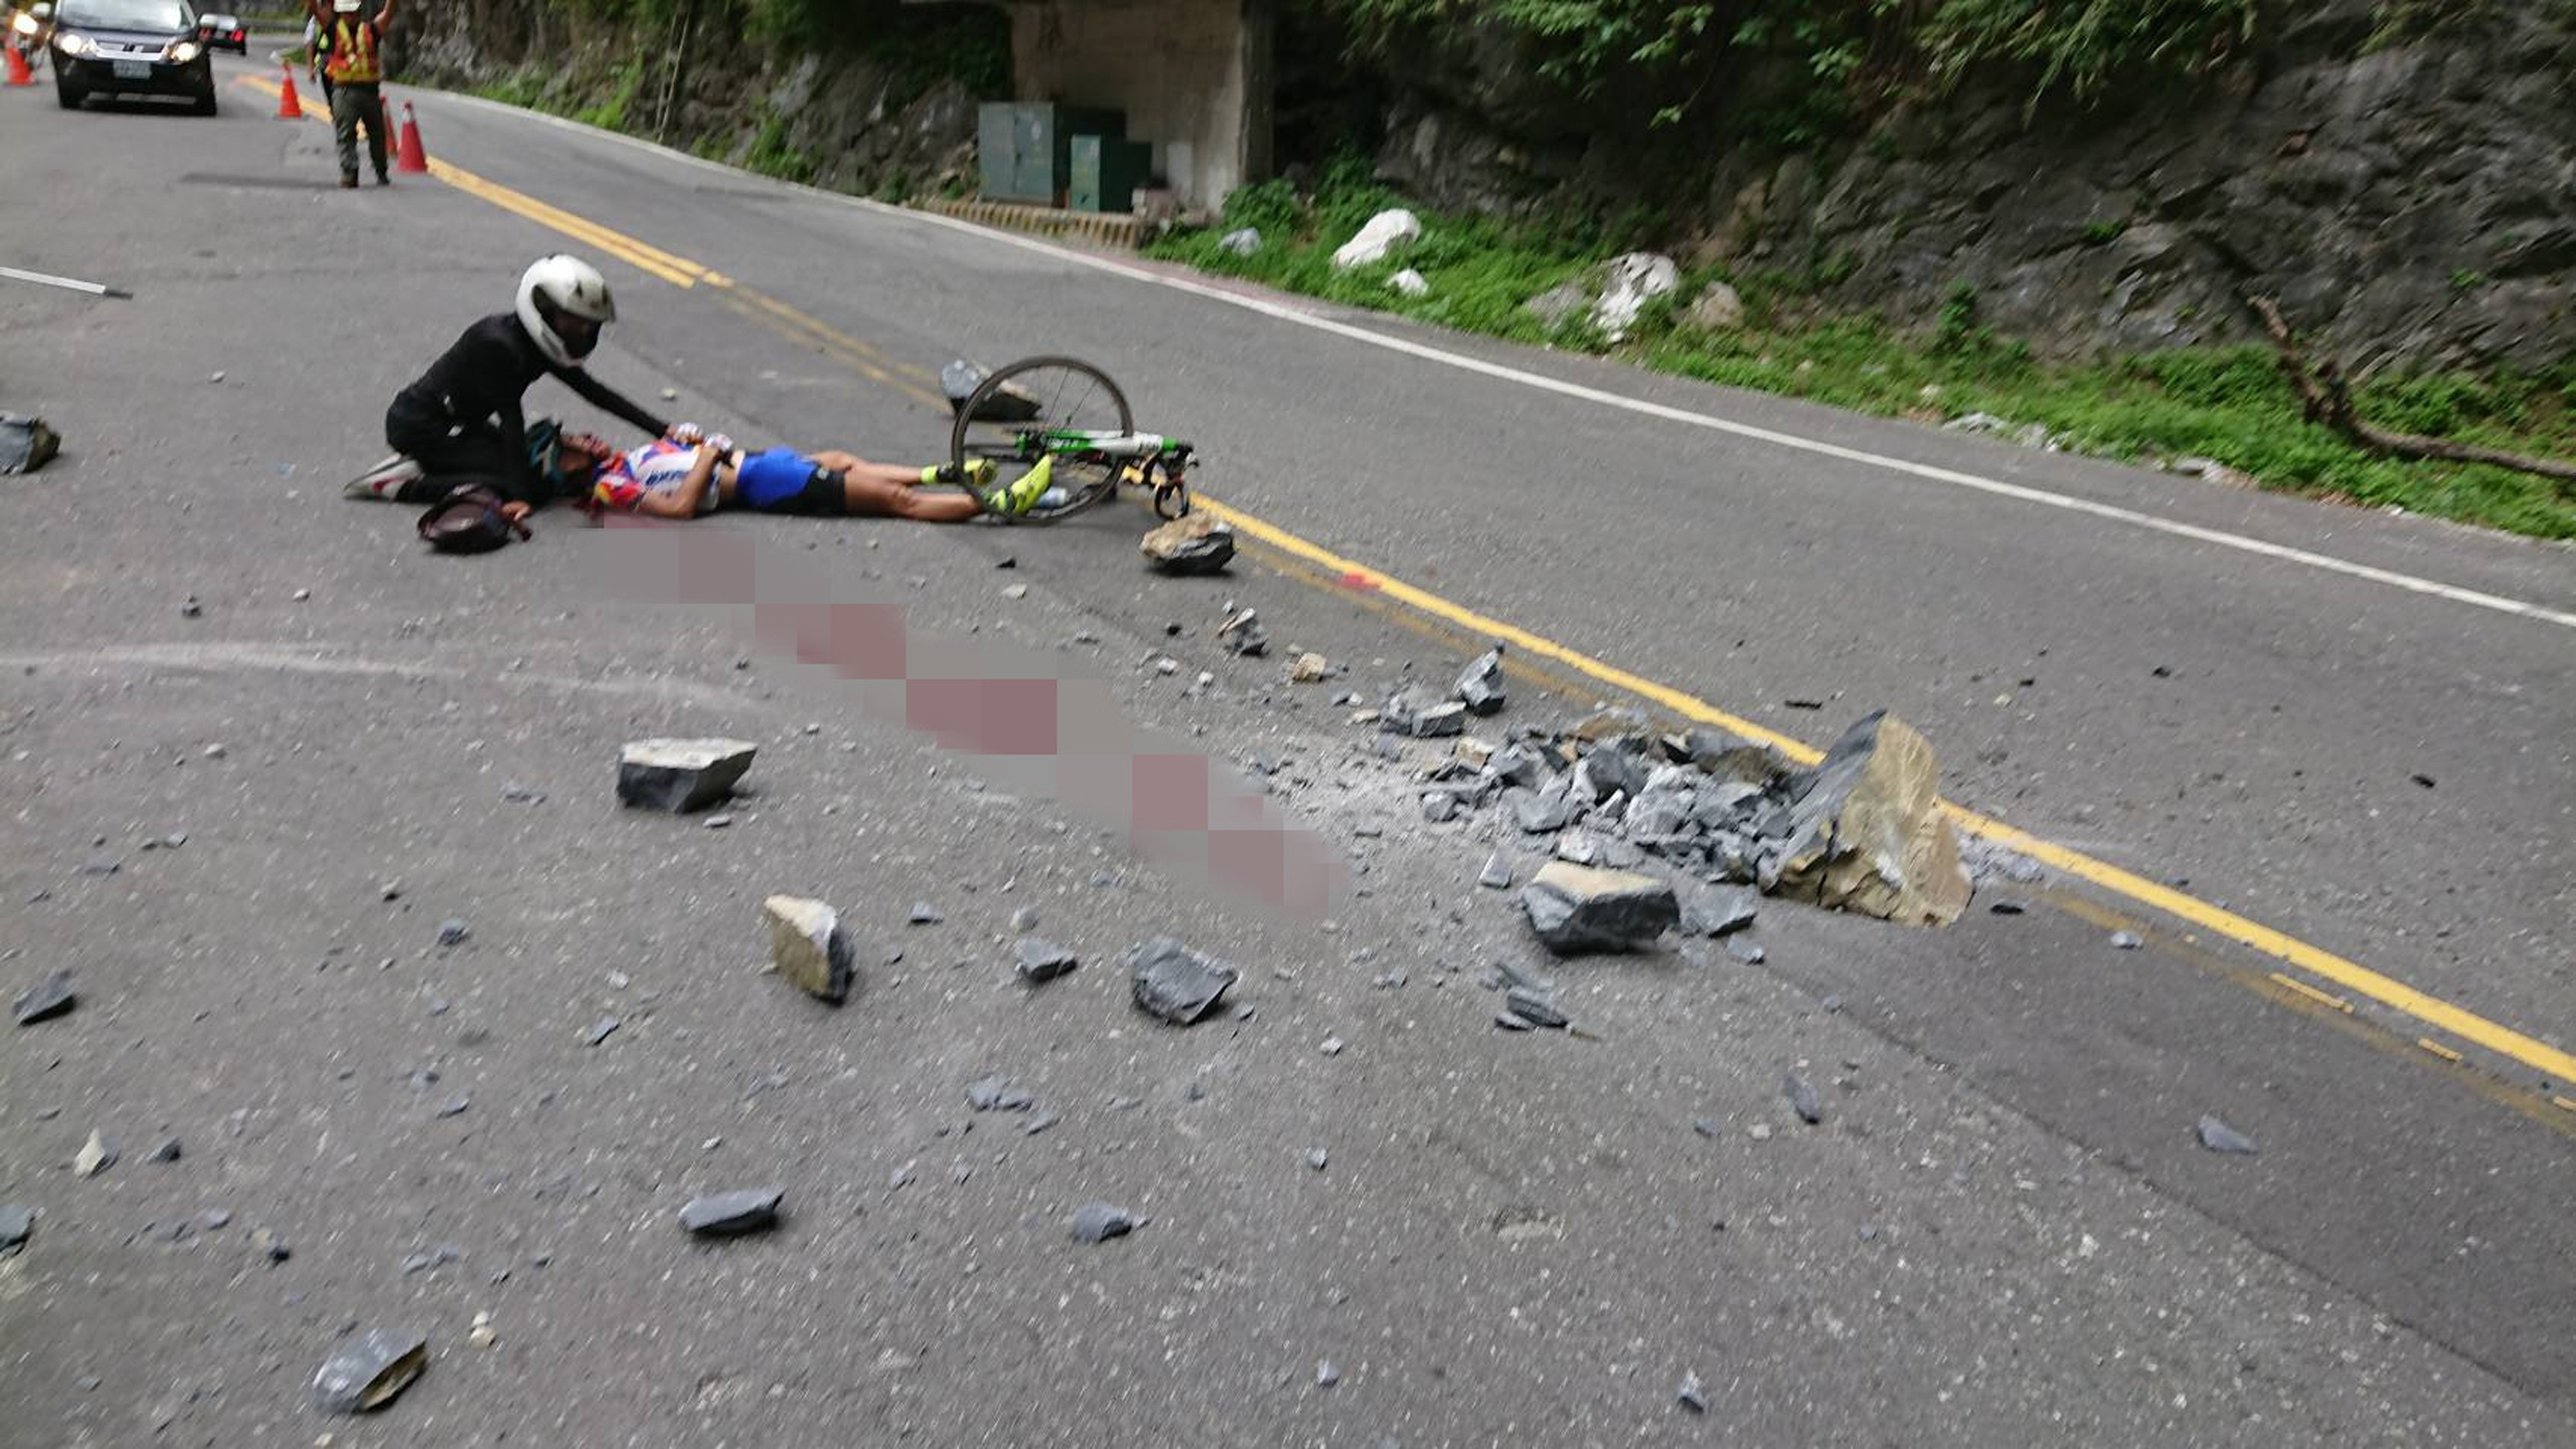 Falling rocks hit a Japanese cyclist in Taroko National Park. (Source: CNA)